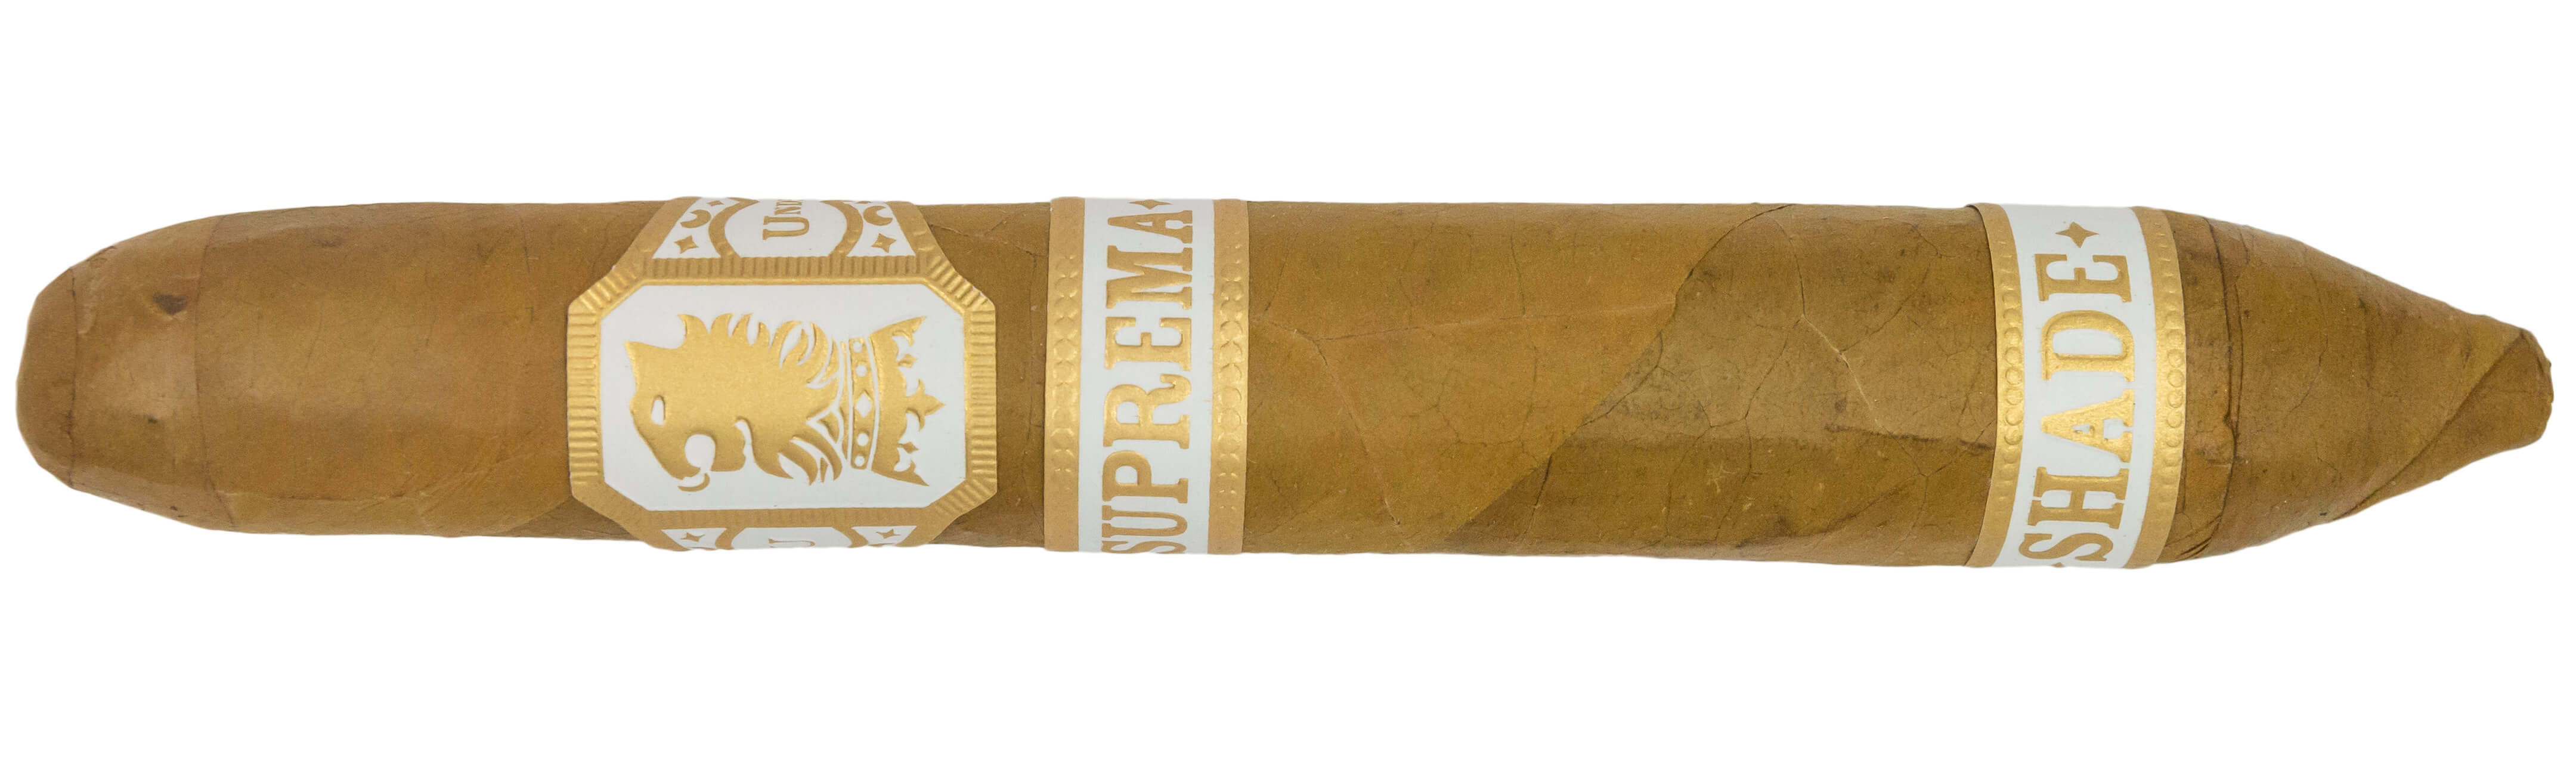 Blind Cigar Review: Drew Estate | Undercrown Shade Suprema